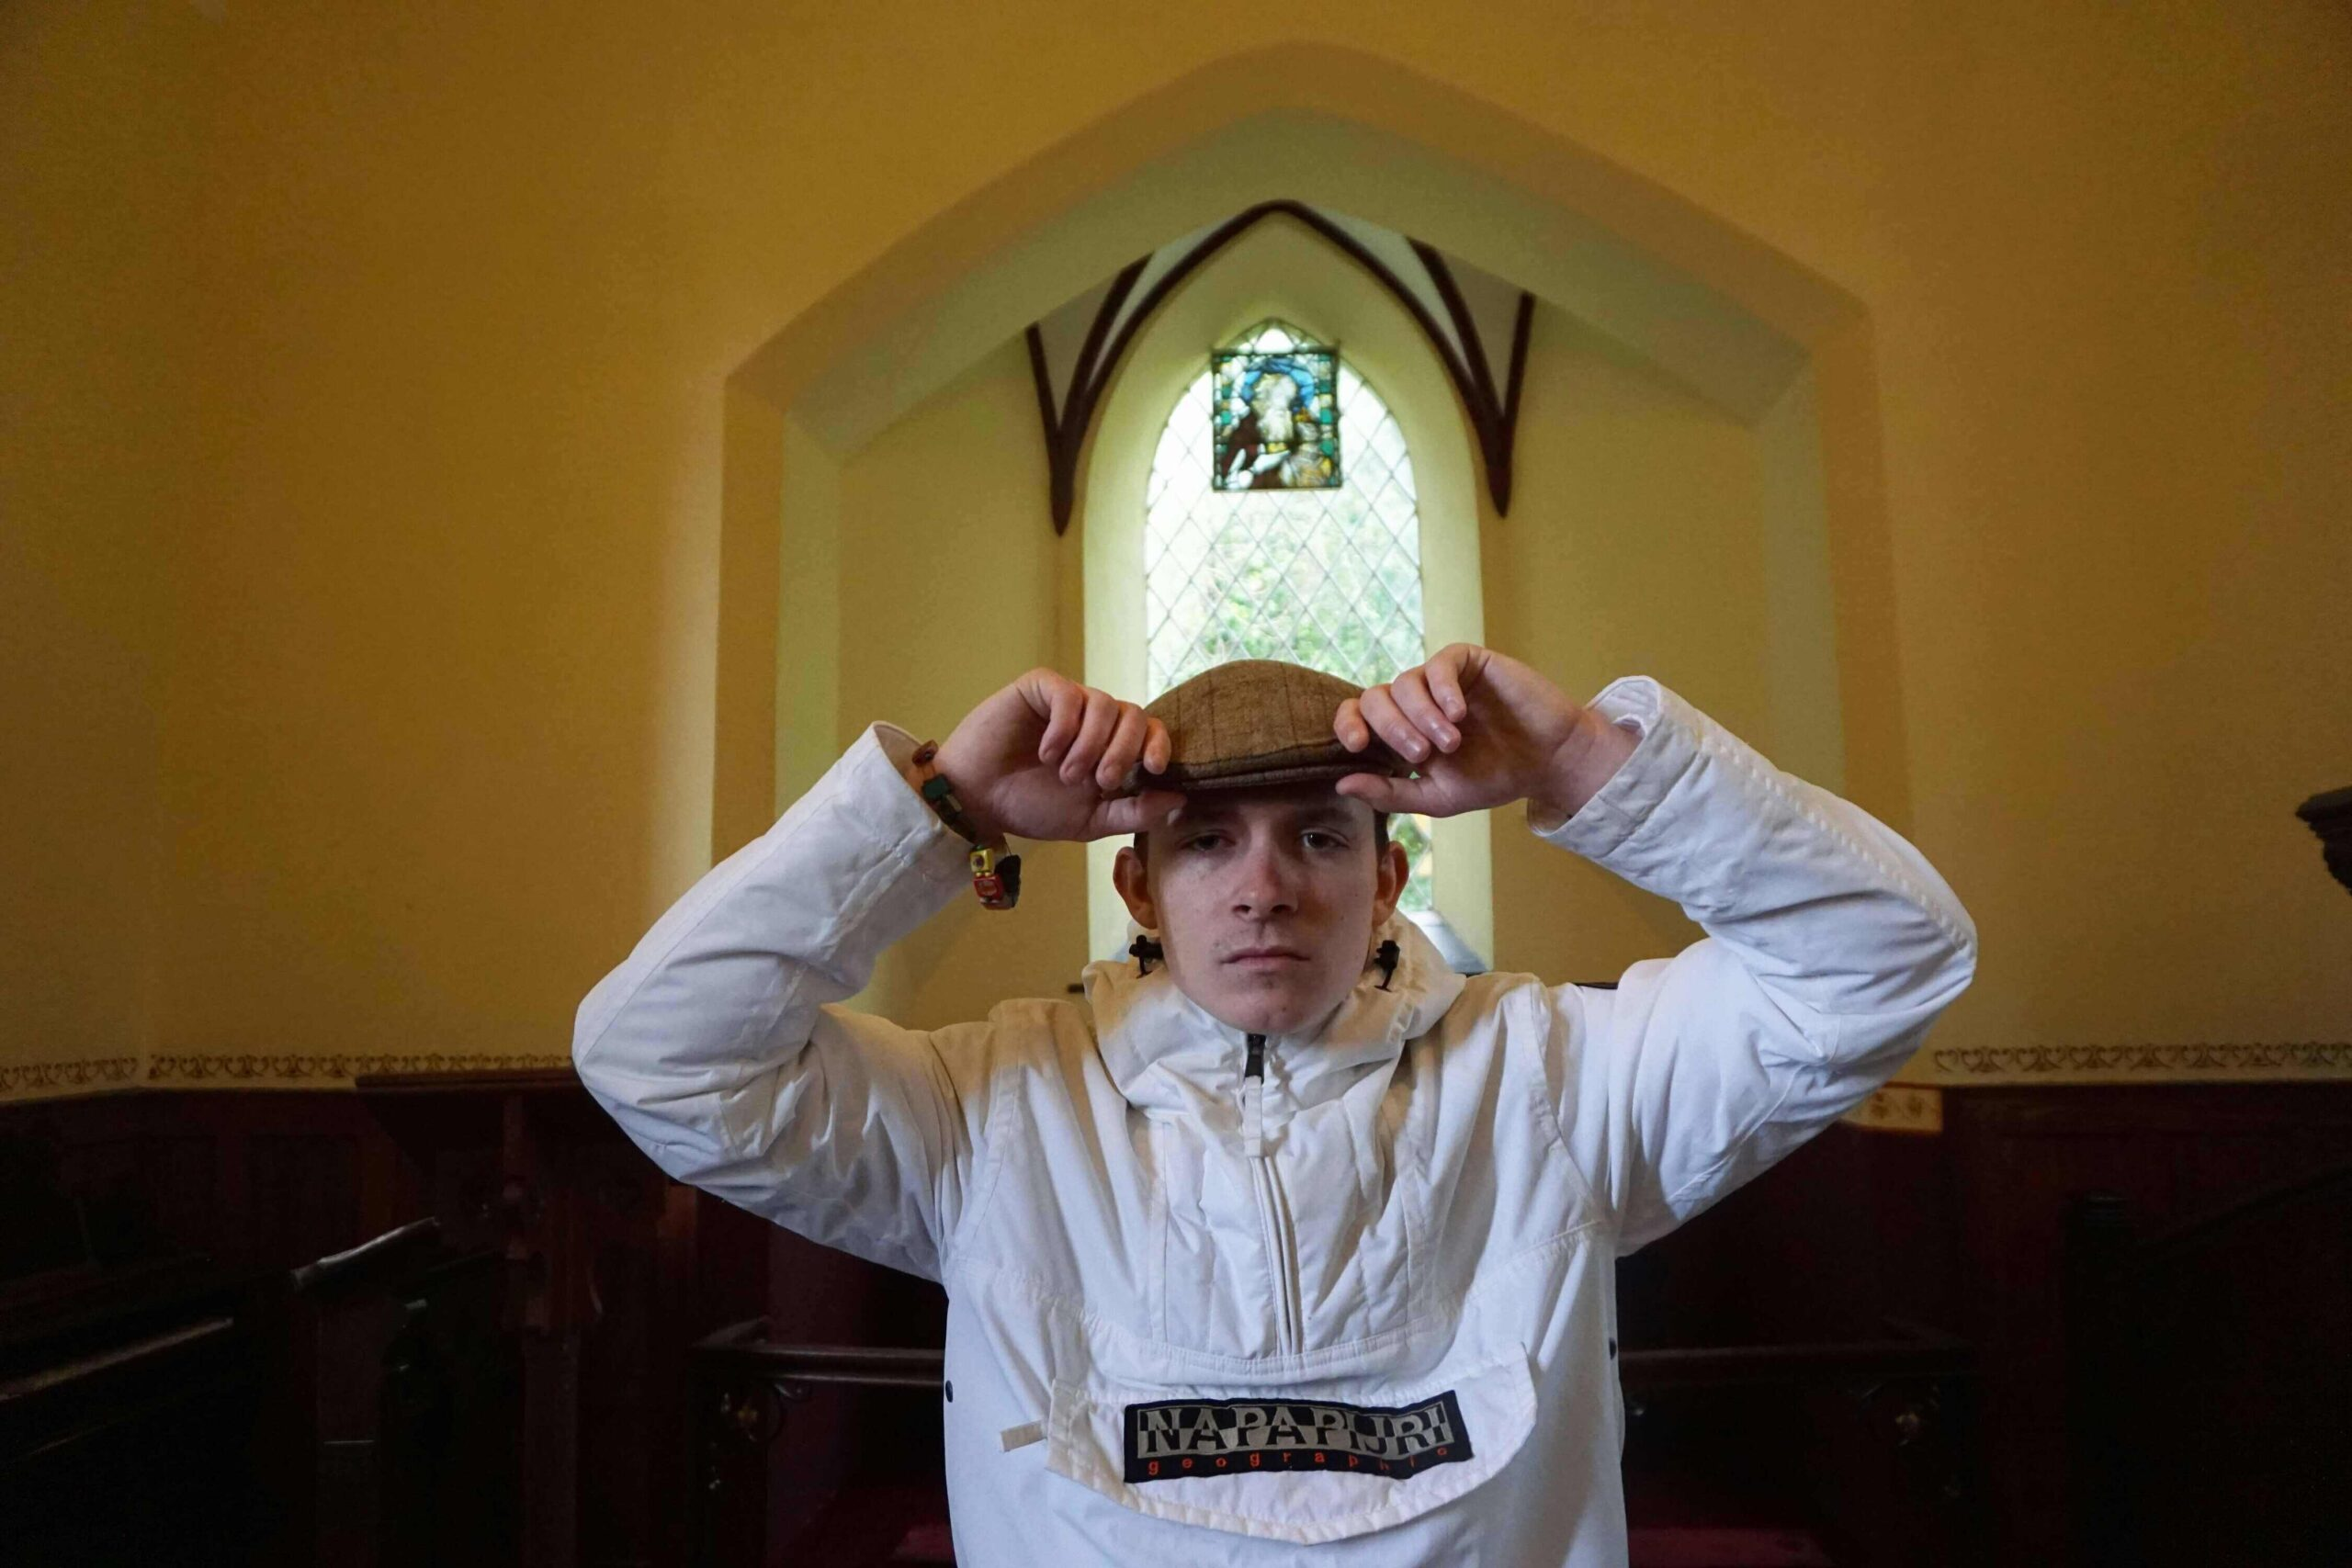 Strange Boy is a 1000-year-old poet channelling through the body of a young man from Limerick